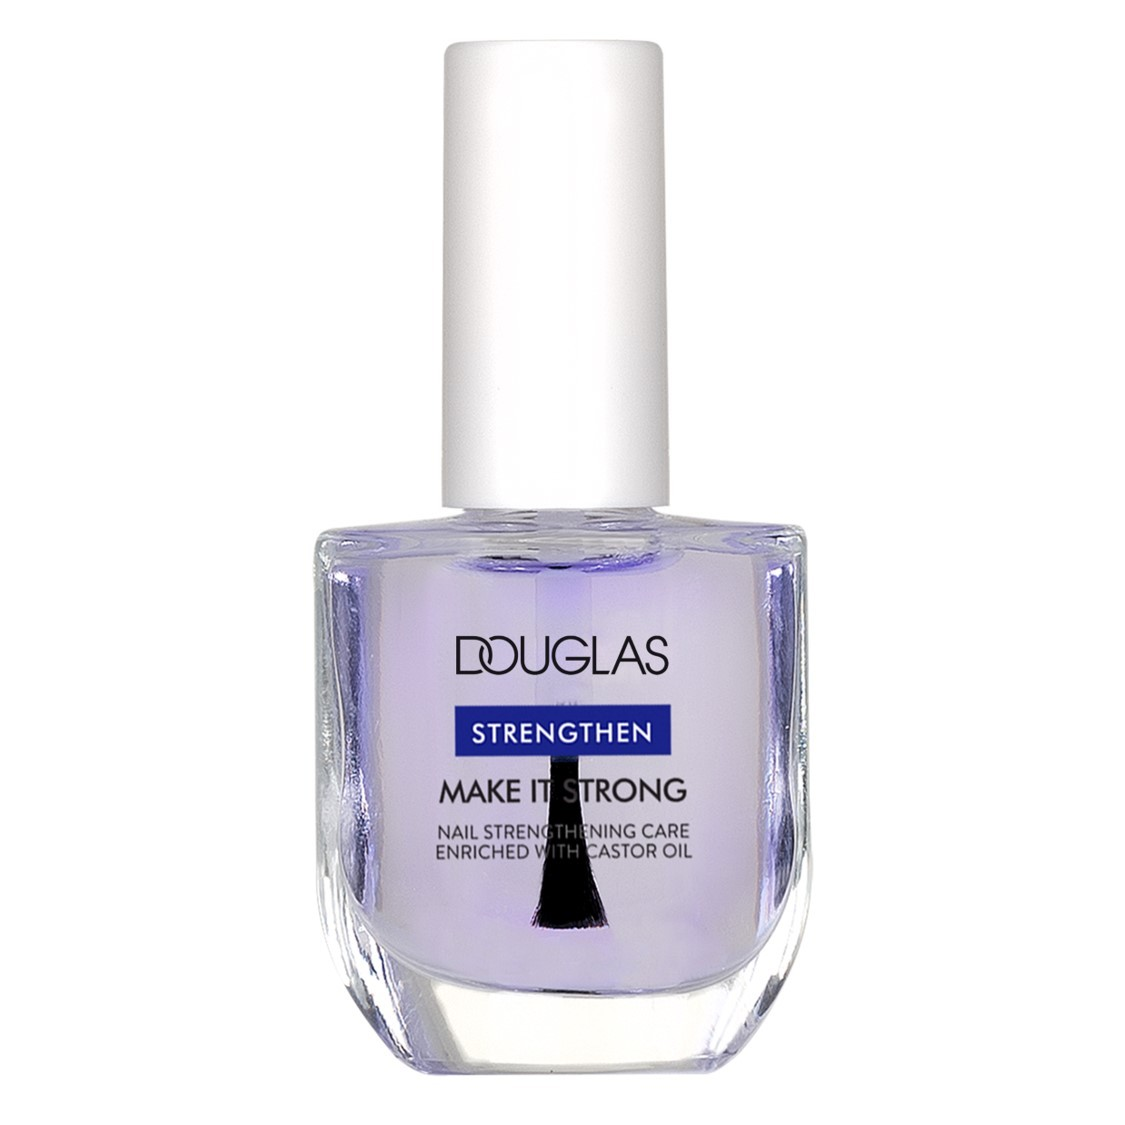 Douglas Collection - Nail Care Make It Strong -